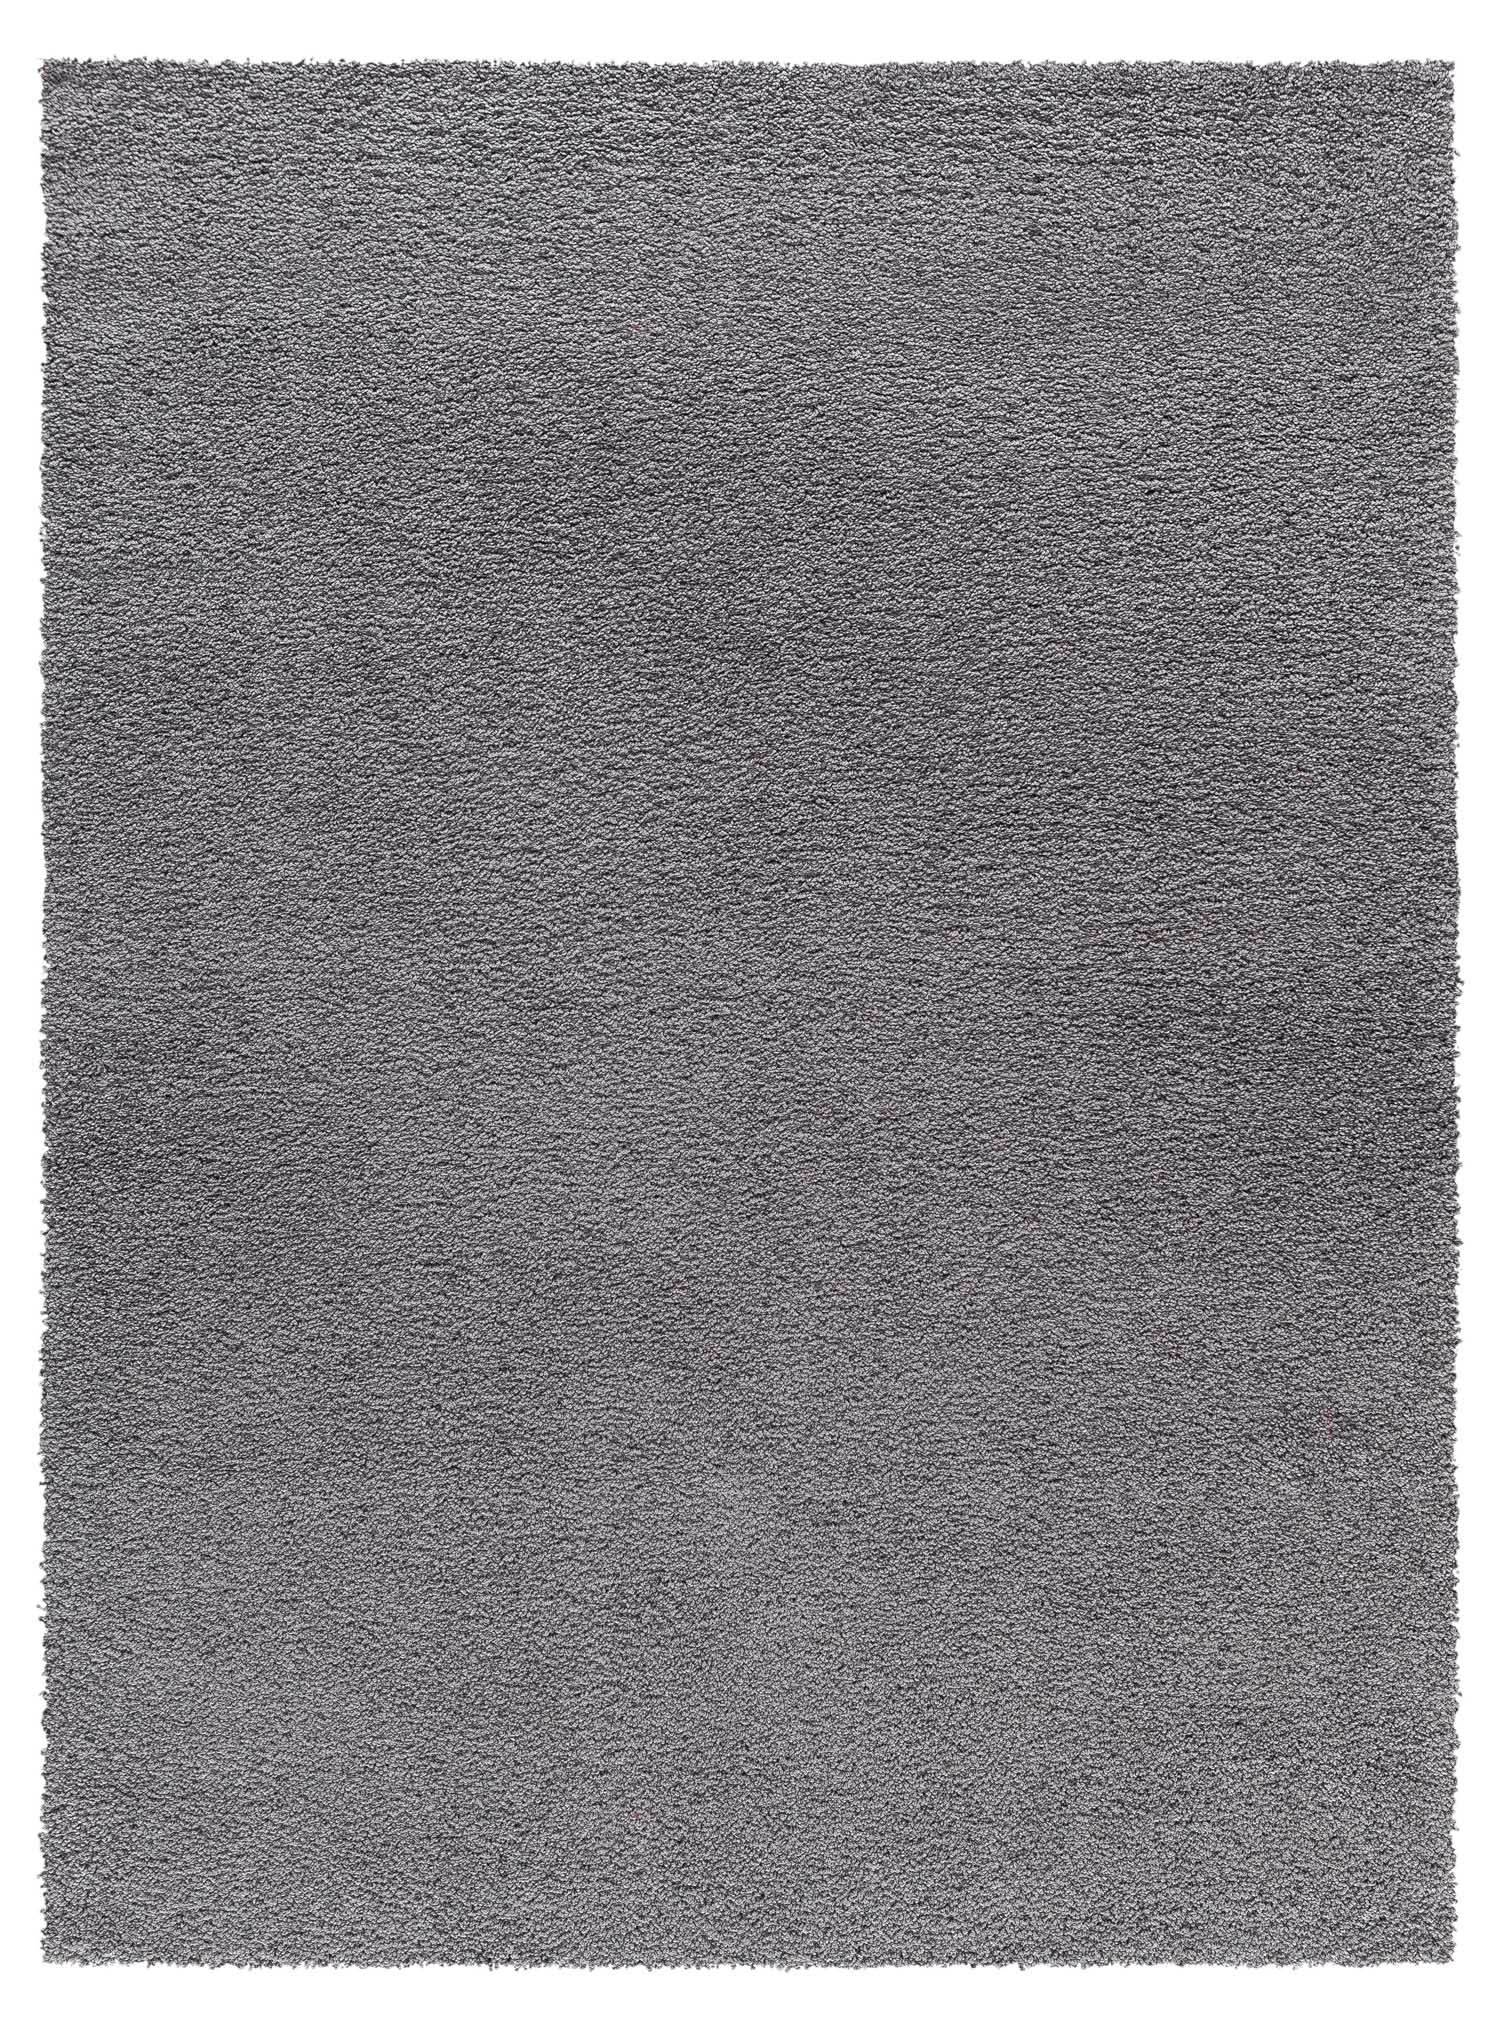 Mod Arte Platinum Collection Plush Area Rug